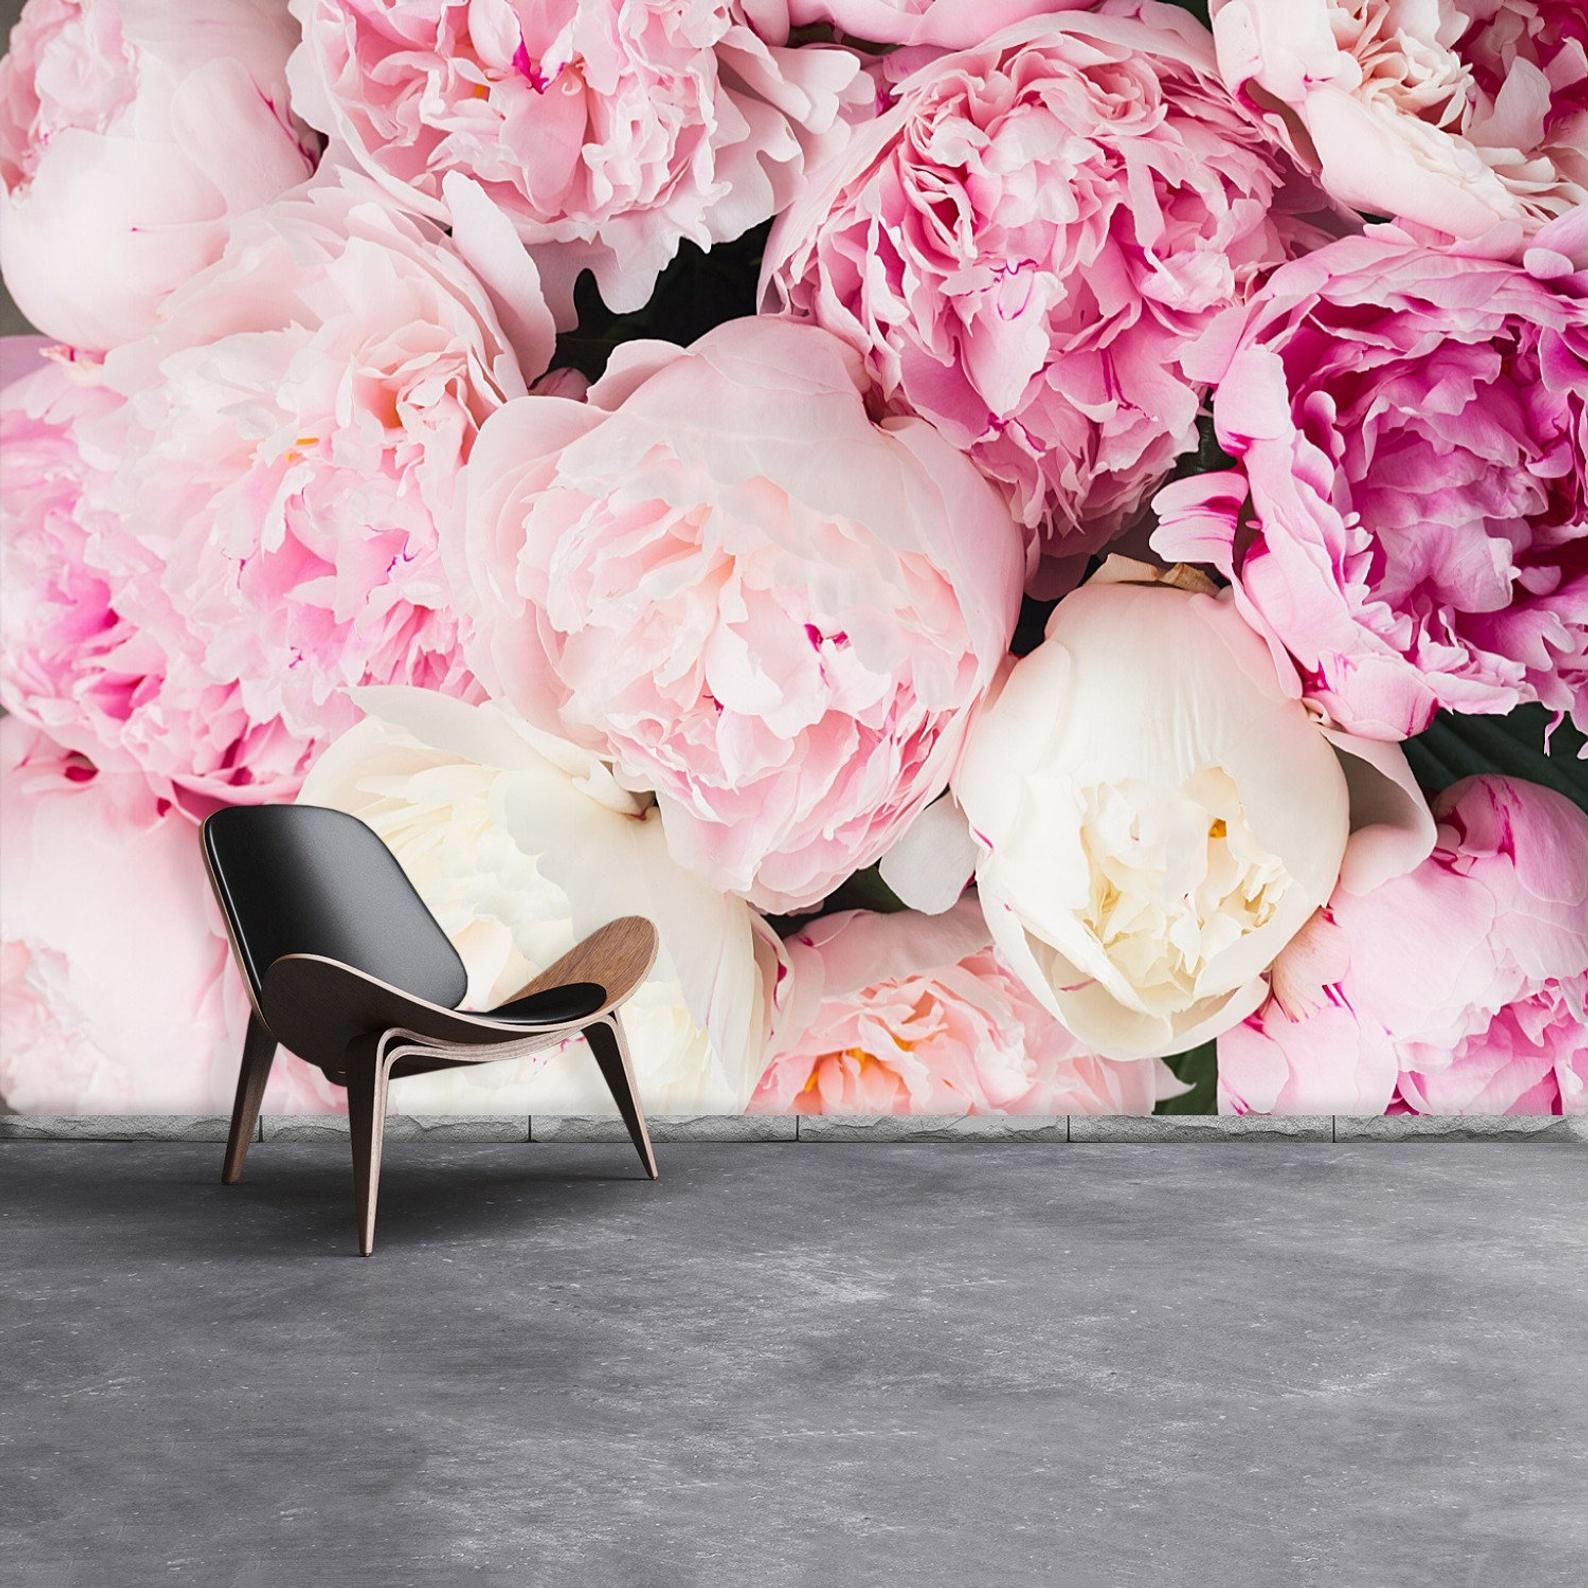 Peonies Pink Peel And Stick Or Classic Glue Photo Wallpaper Etsy Pink Floral Background Floral Background Pink Peonies